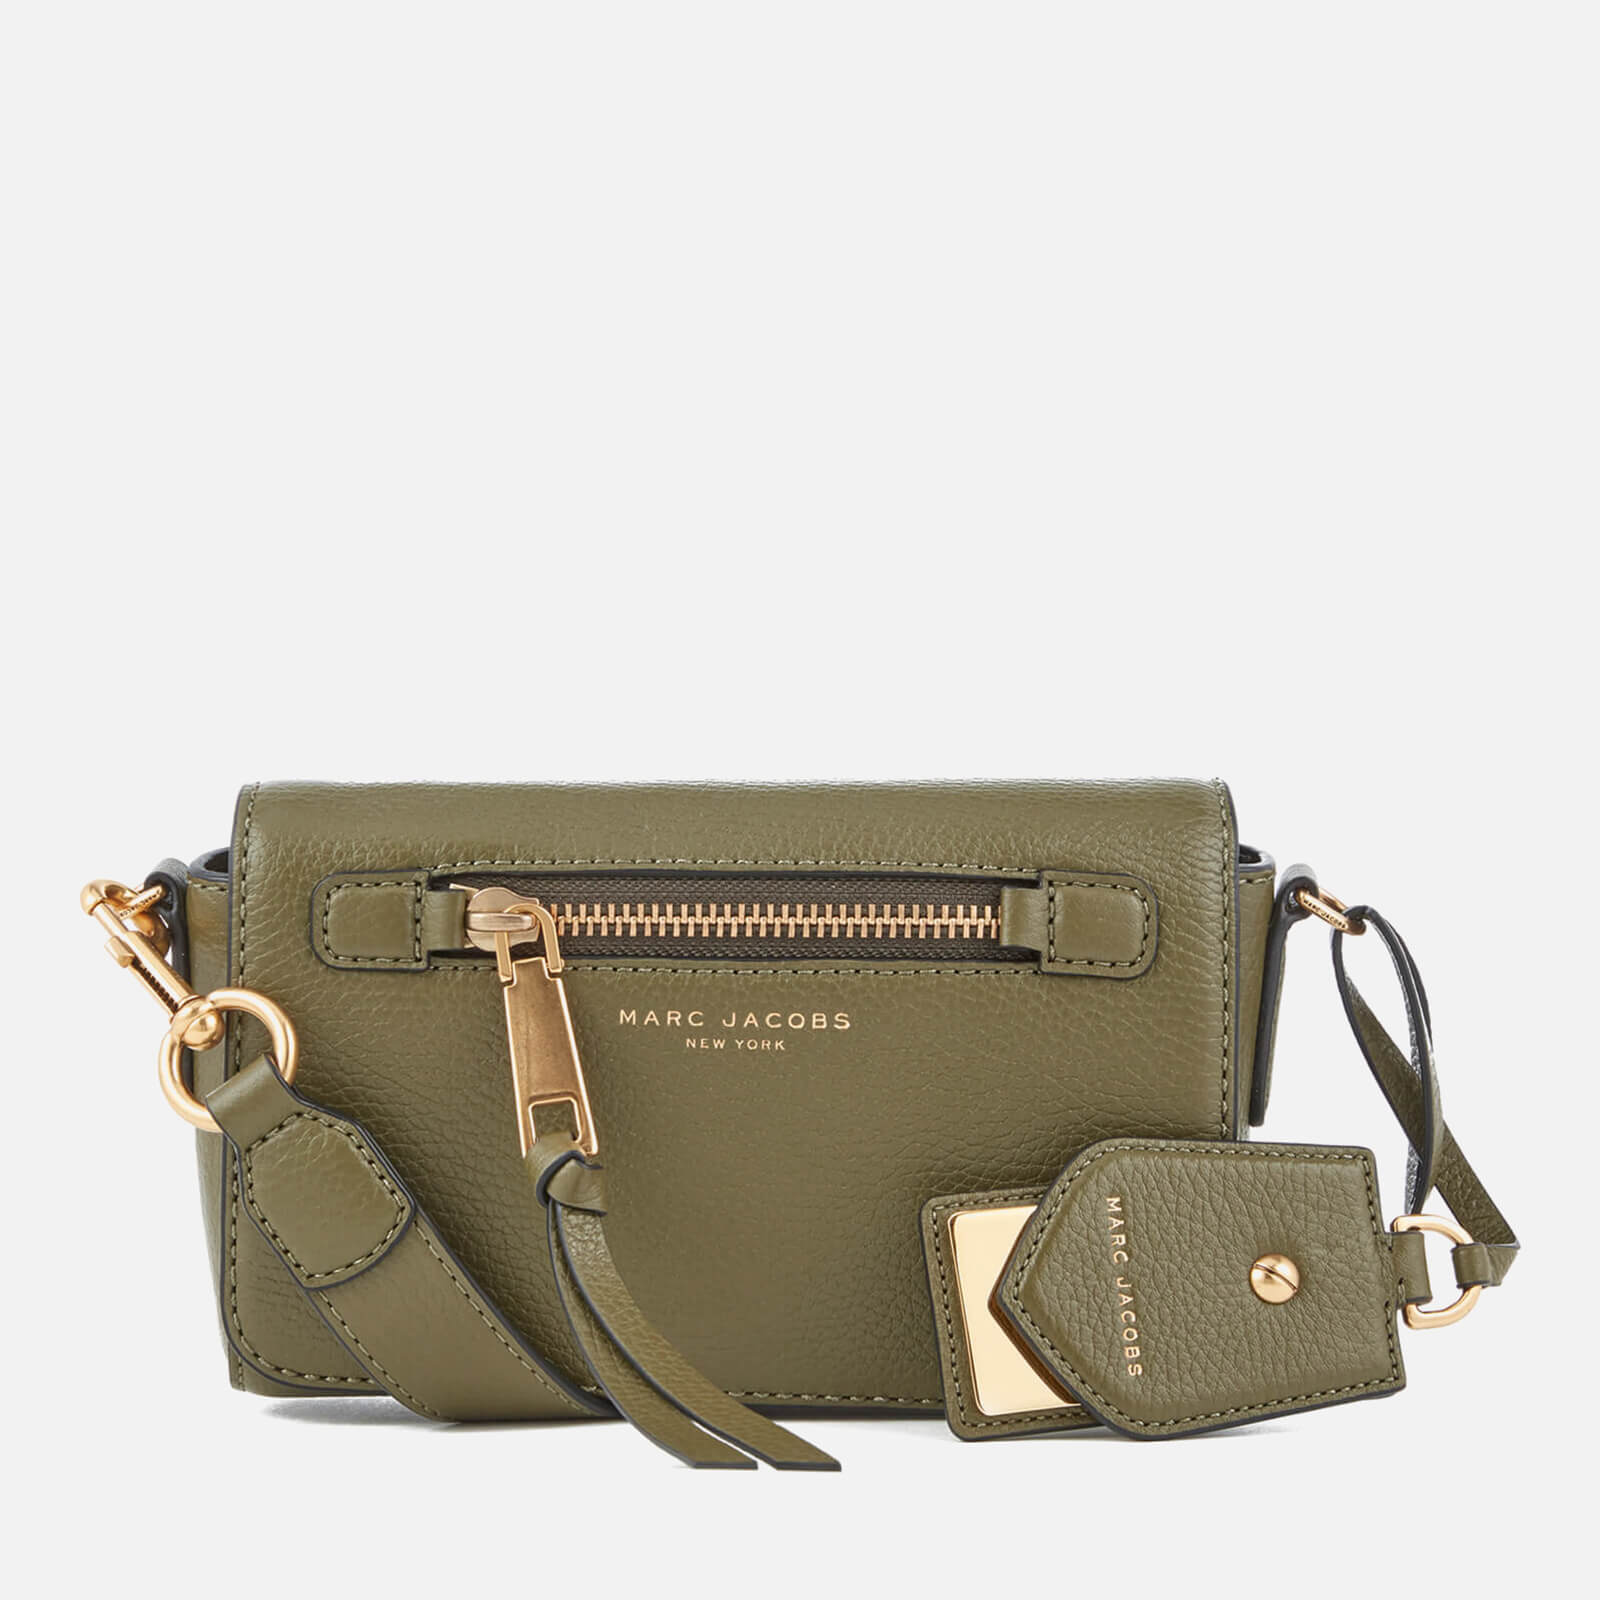 95d1ab782dd7 Marc Jacobs Women s Recruit Cross Body Bag - Army Green - Free UK Delivery  over £50